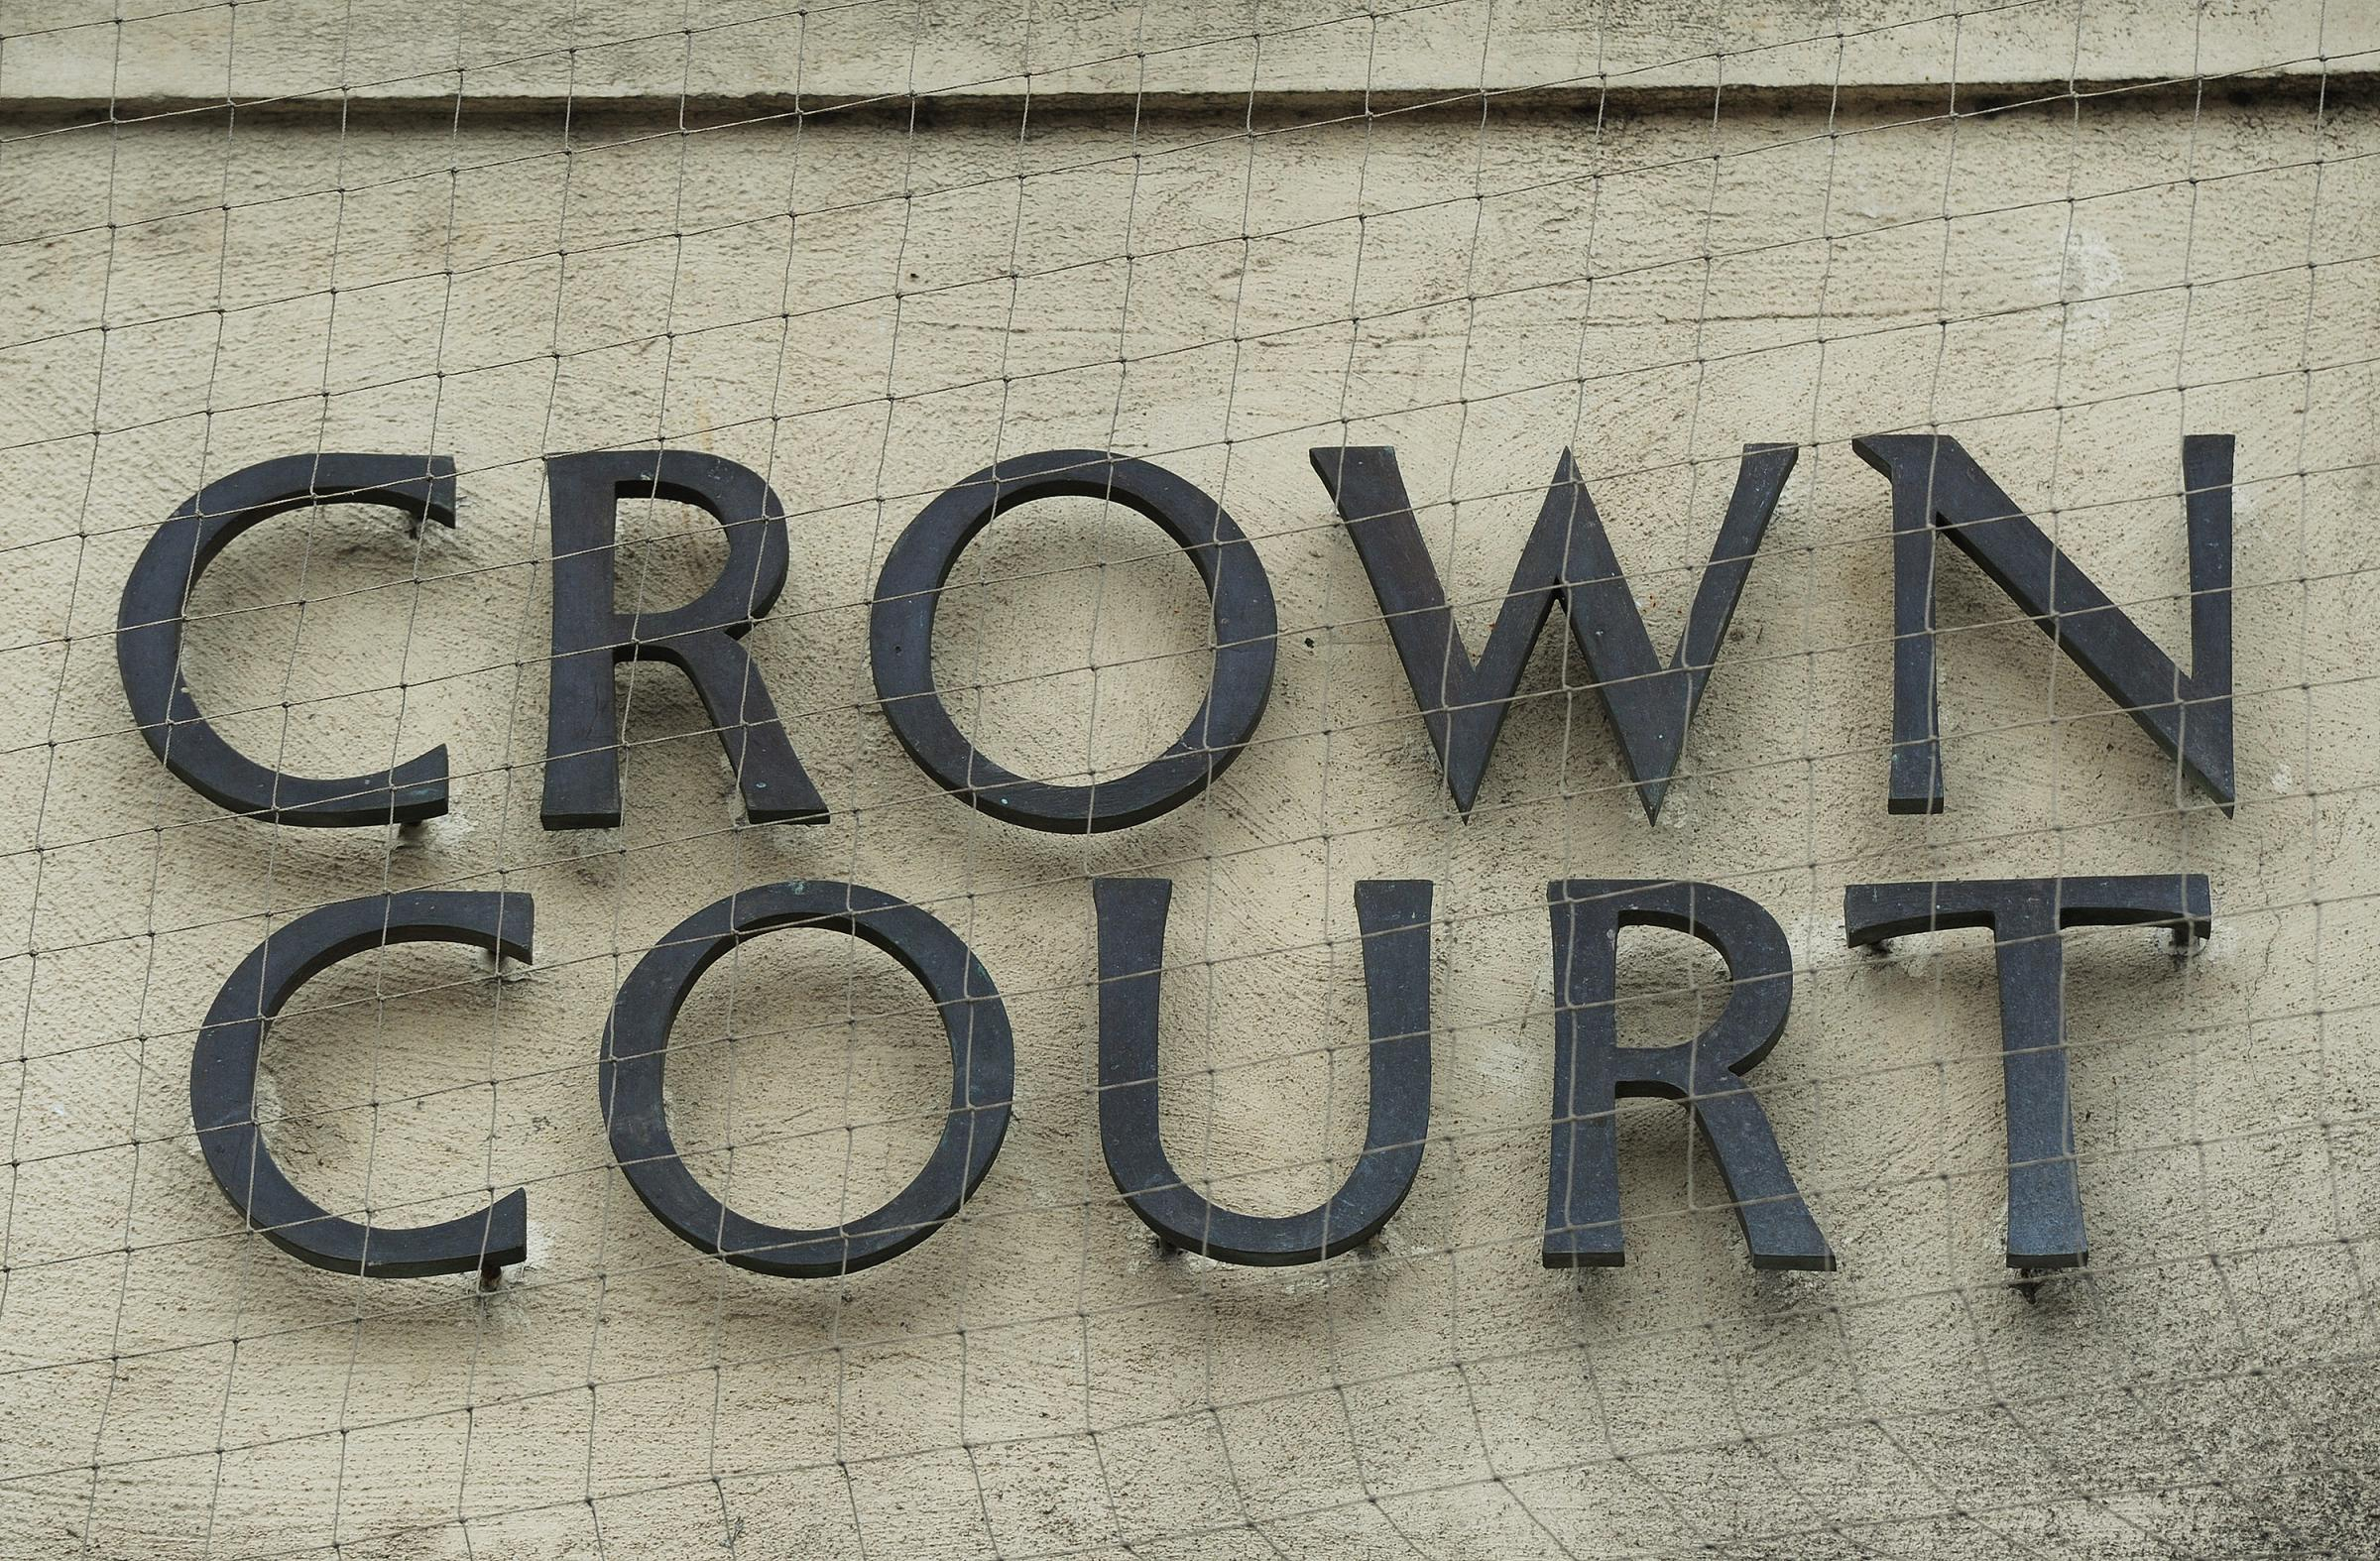 Man who fractured dad's jaw after council tax row spared jail